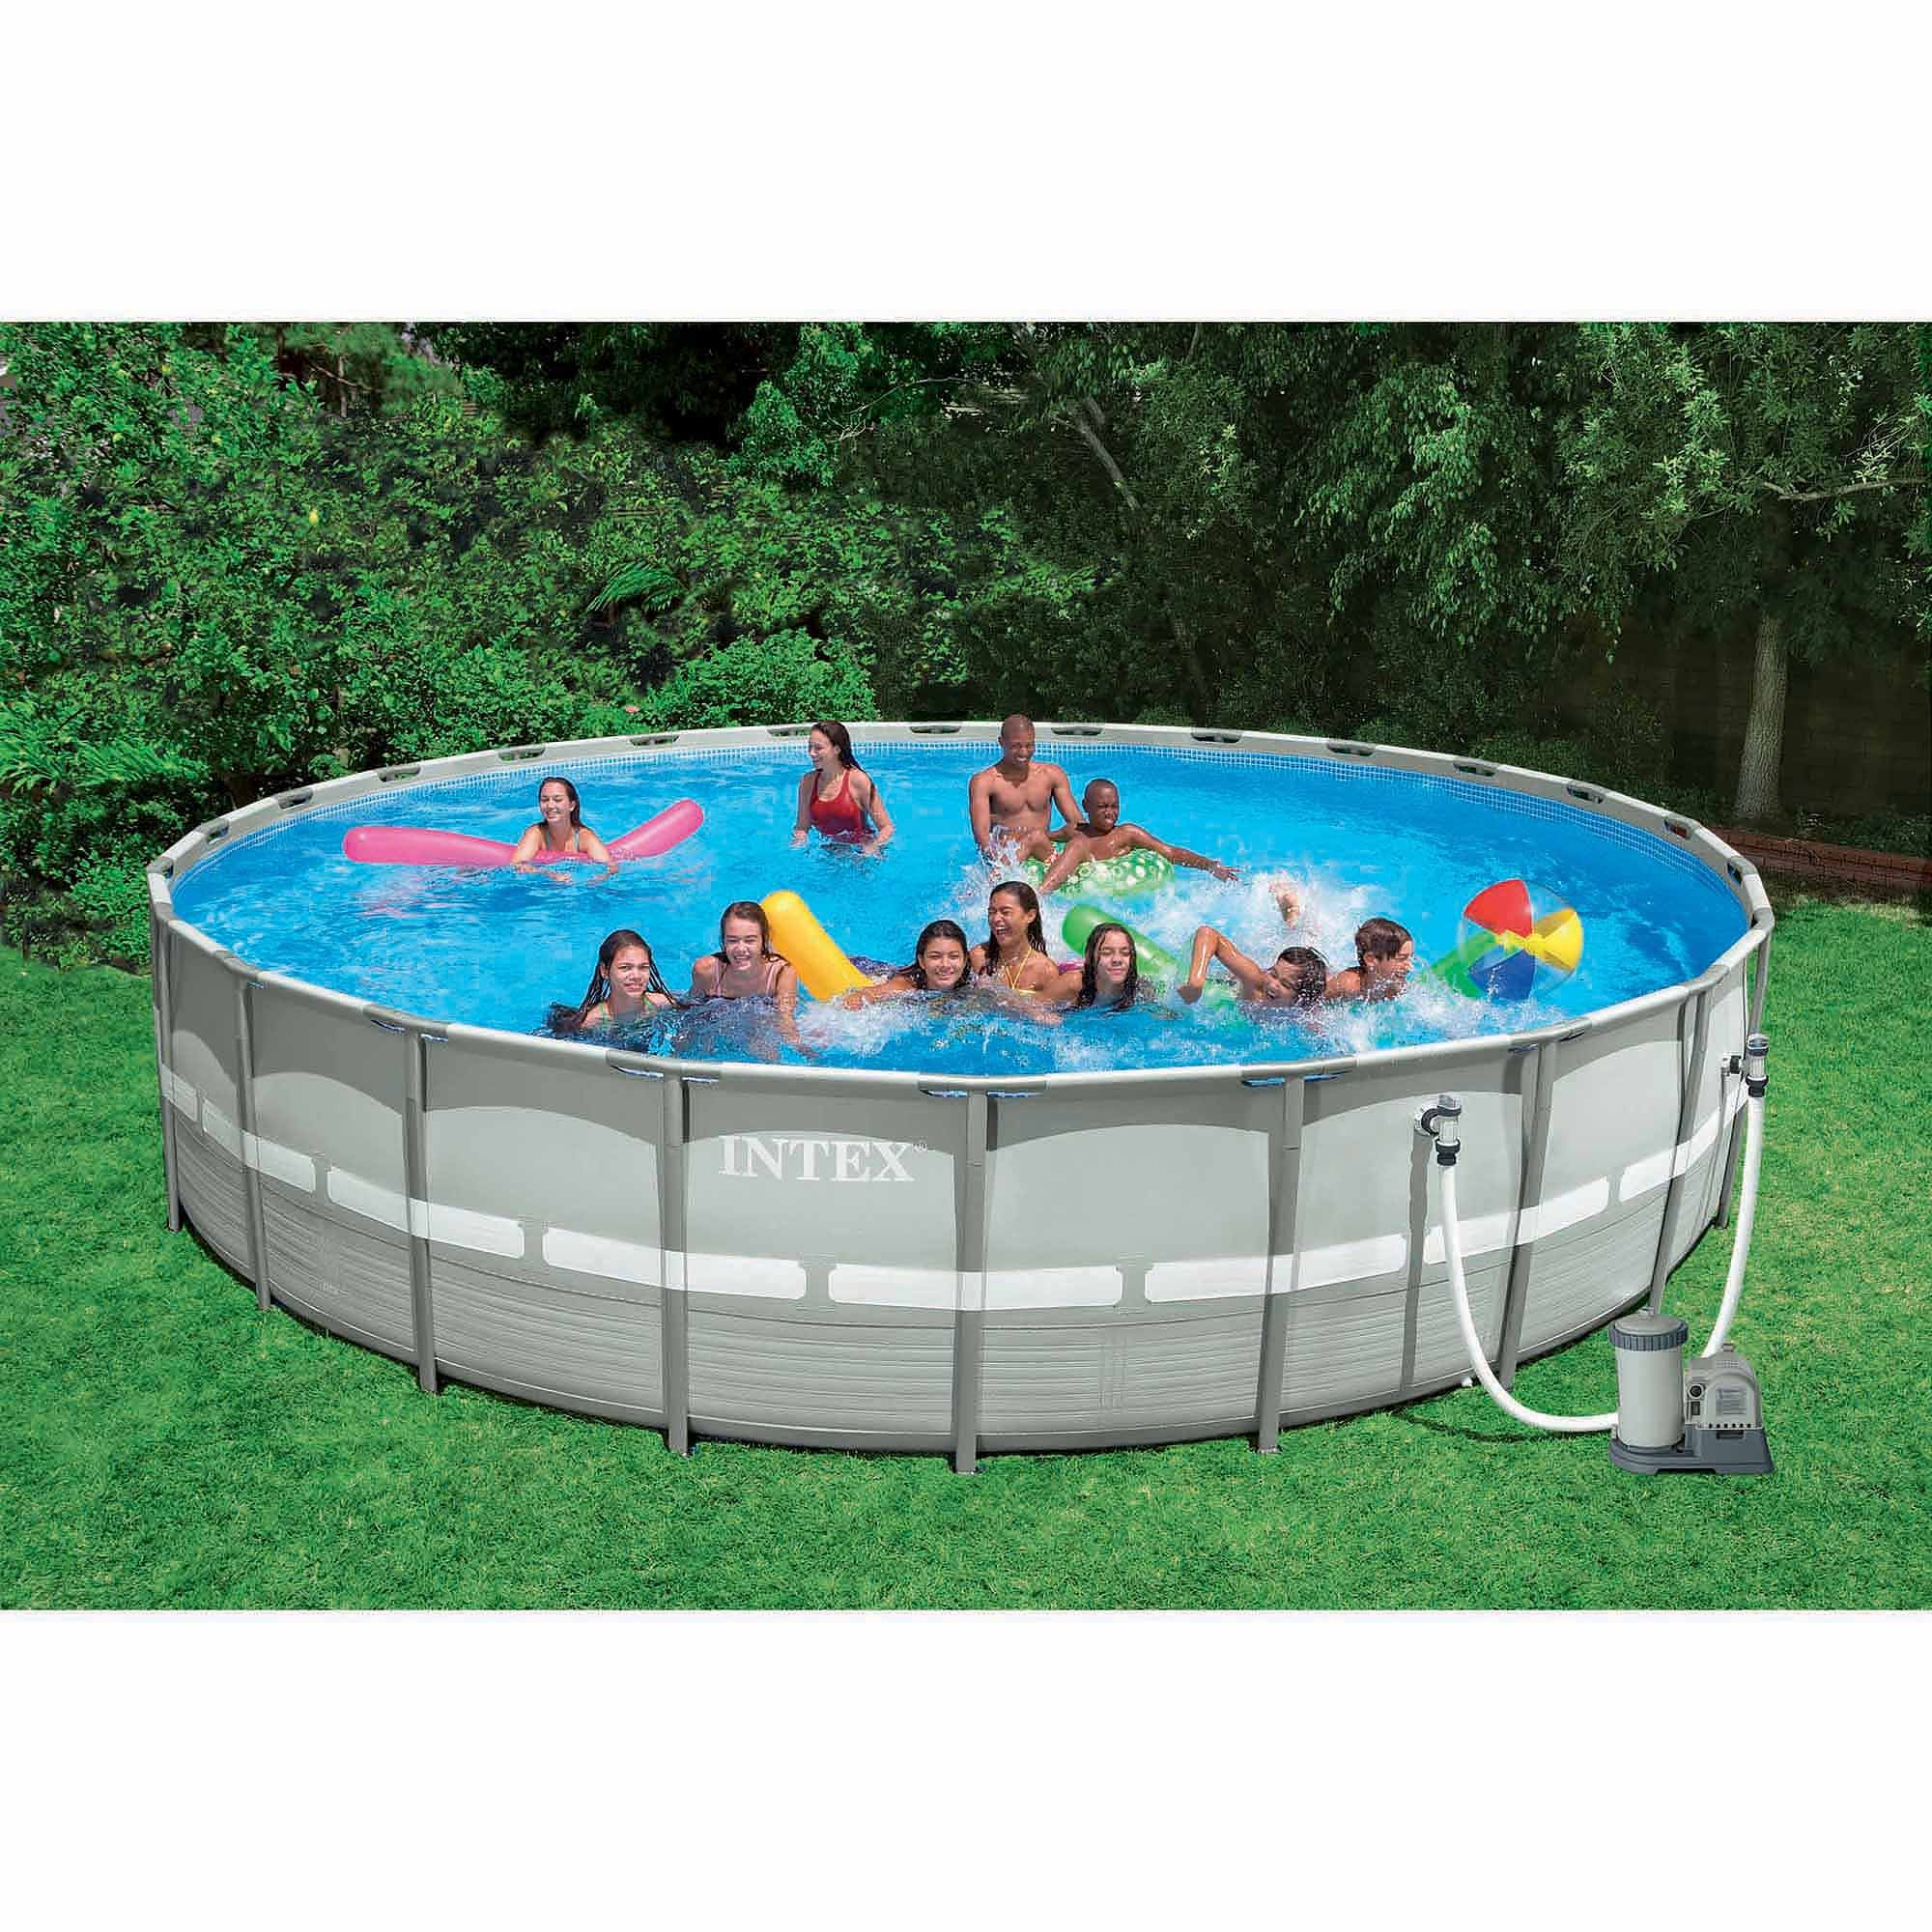 Intex Pool Frame Rund Cheap Ultra Frame Pool Intex Find Ultra Frame Pool Intex Deals On